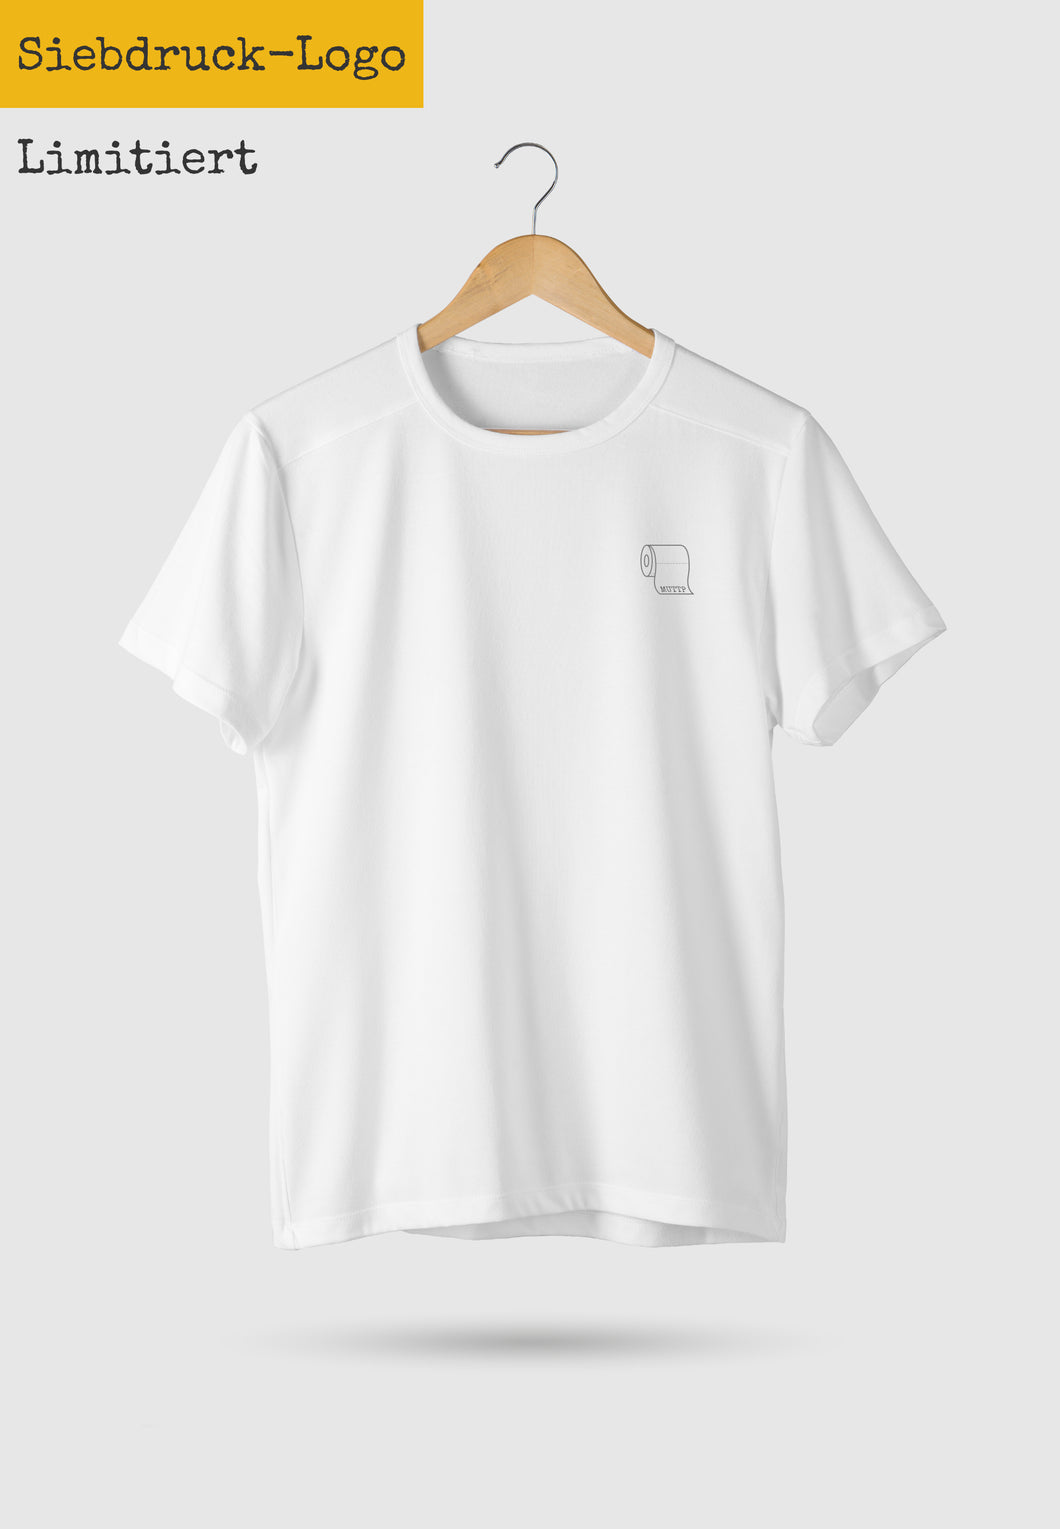 LIMITED - Toilet Paper T-Shirt White (printed) - Unisex